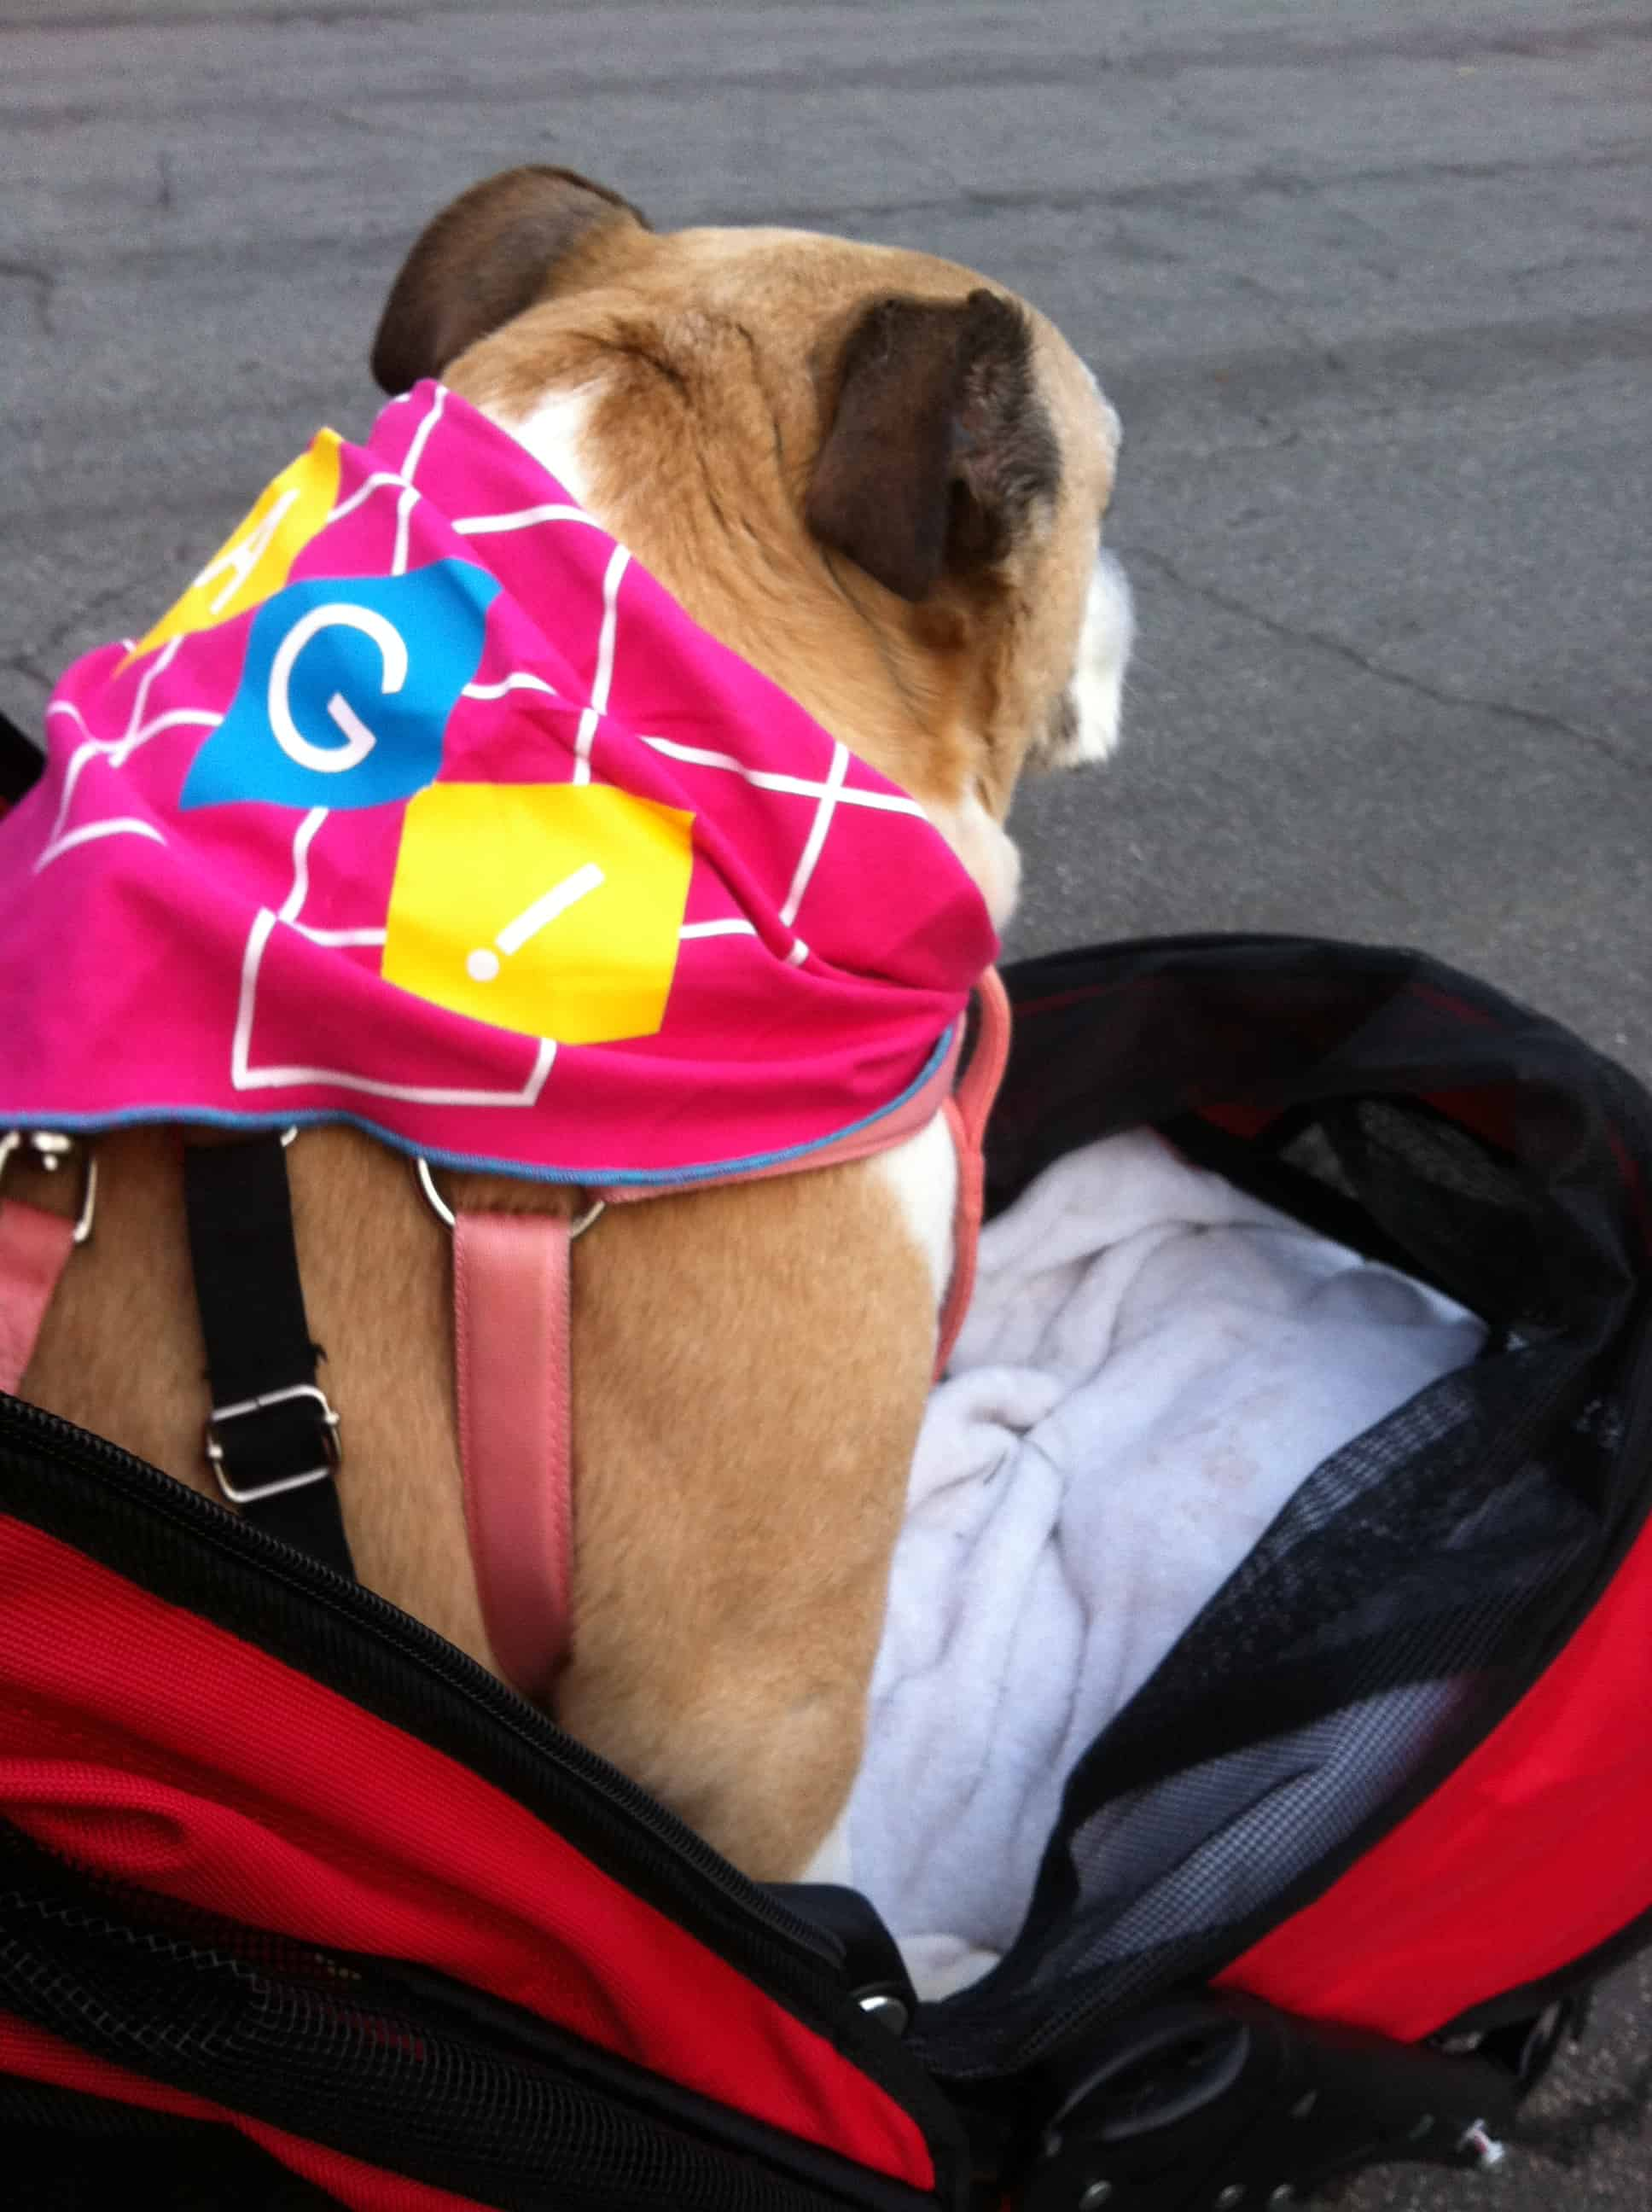 Snoopy in her stroller - senior English Bulldogs and aging